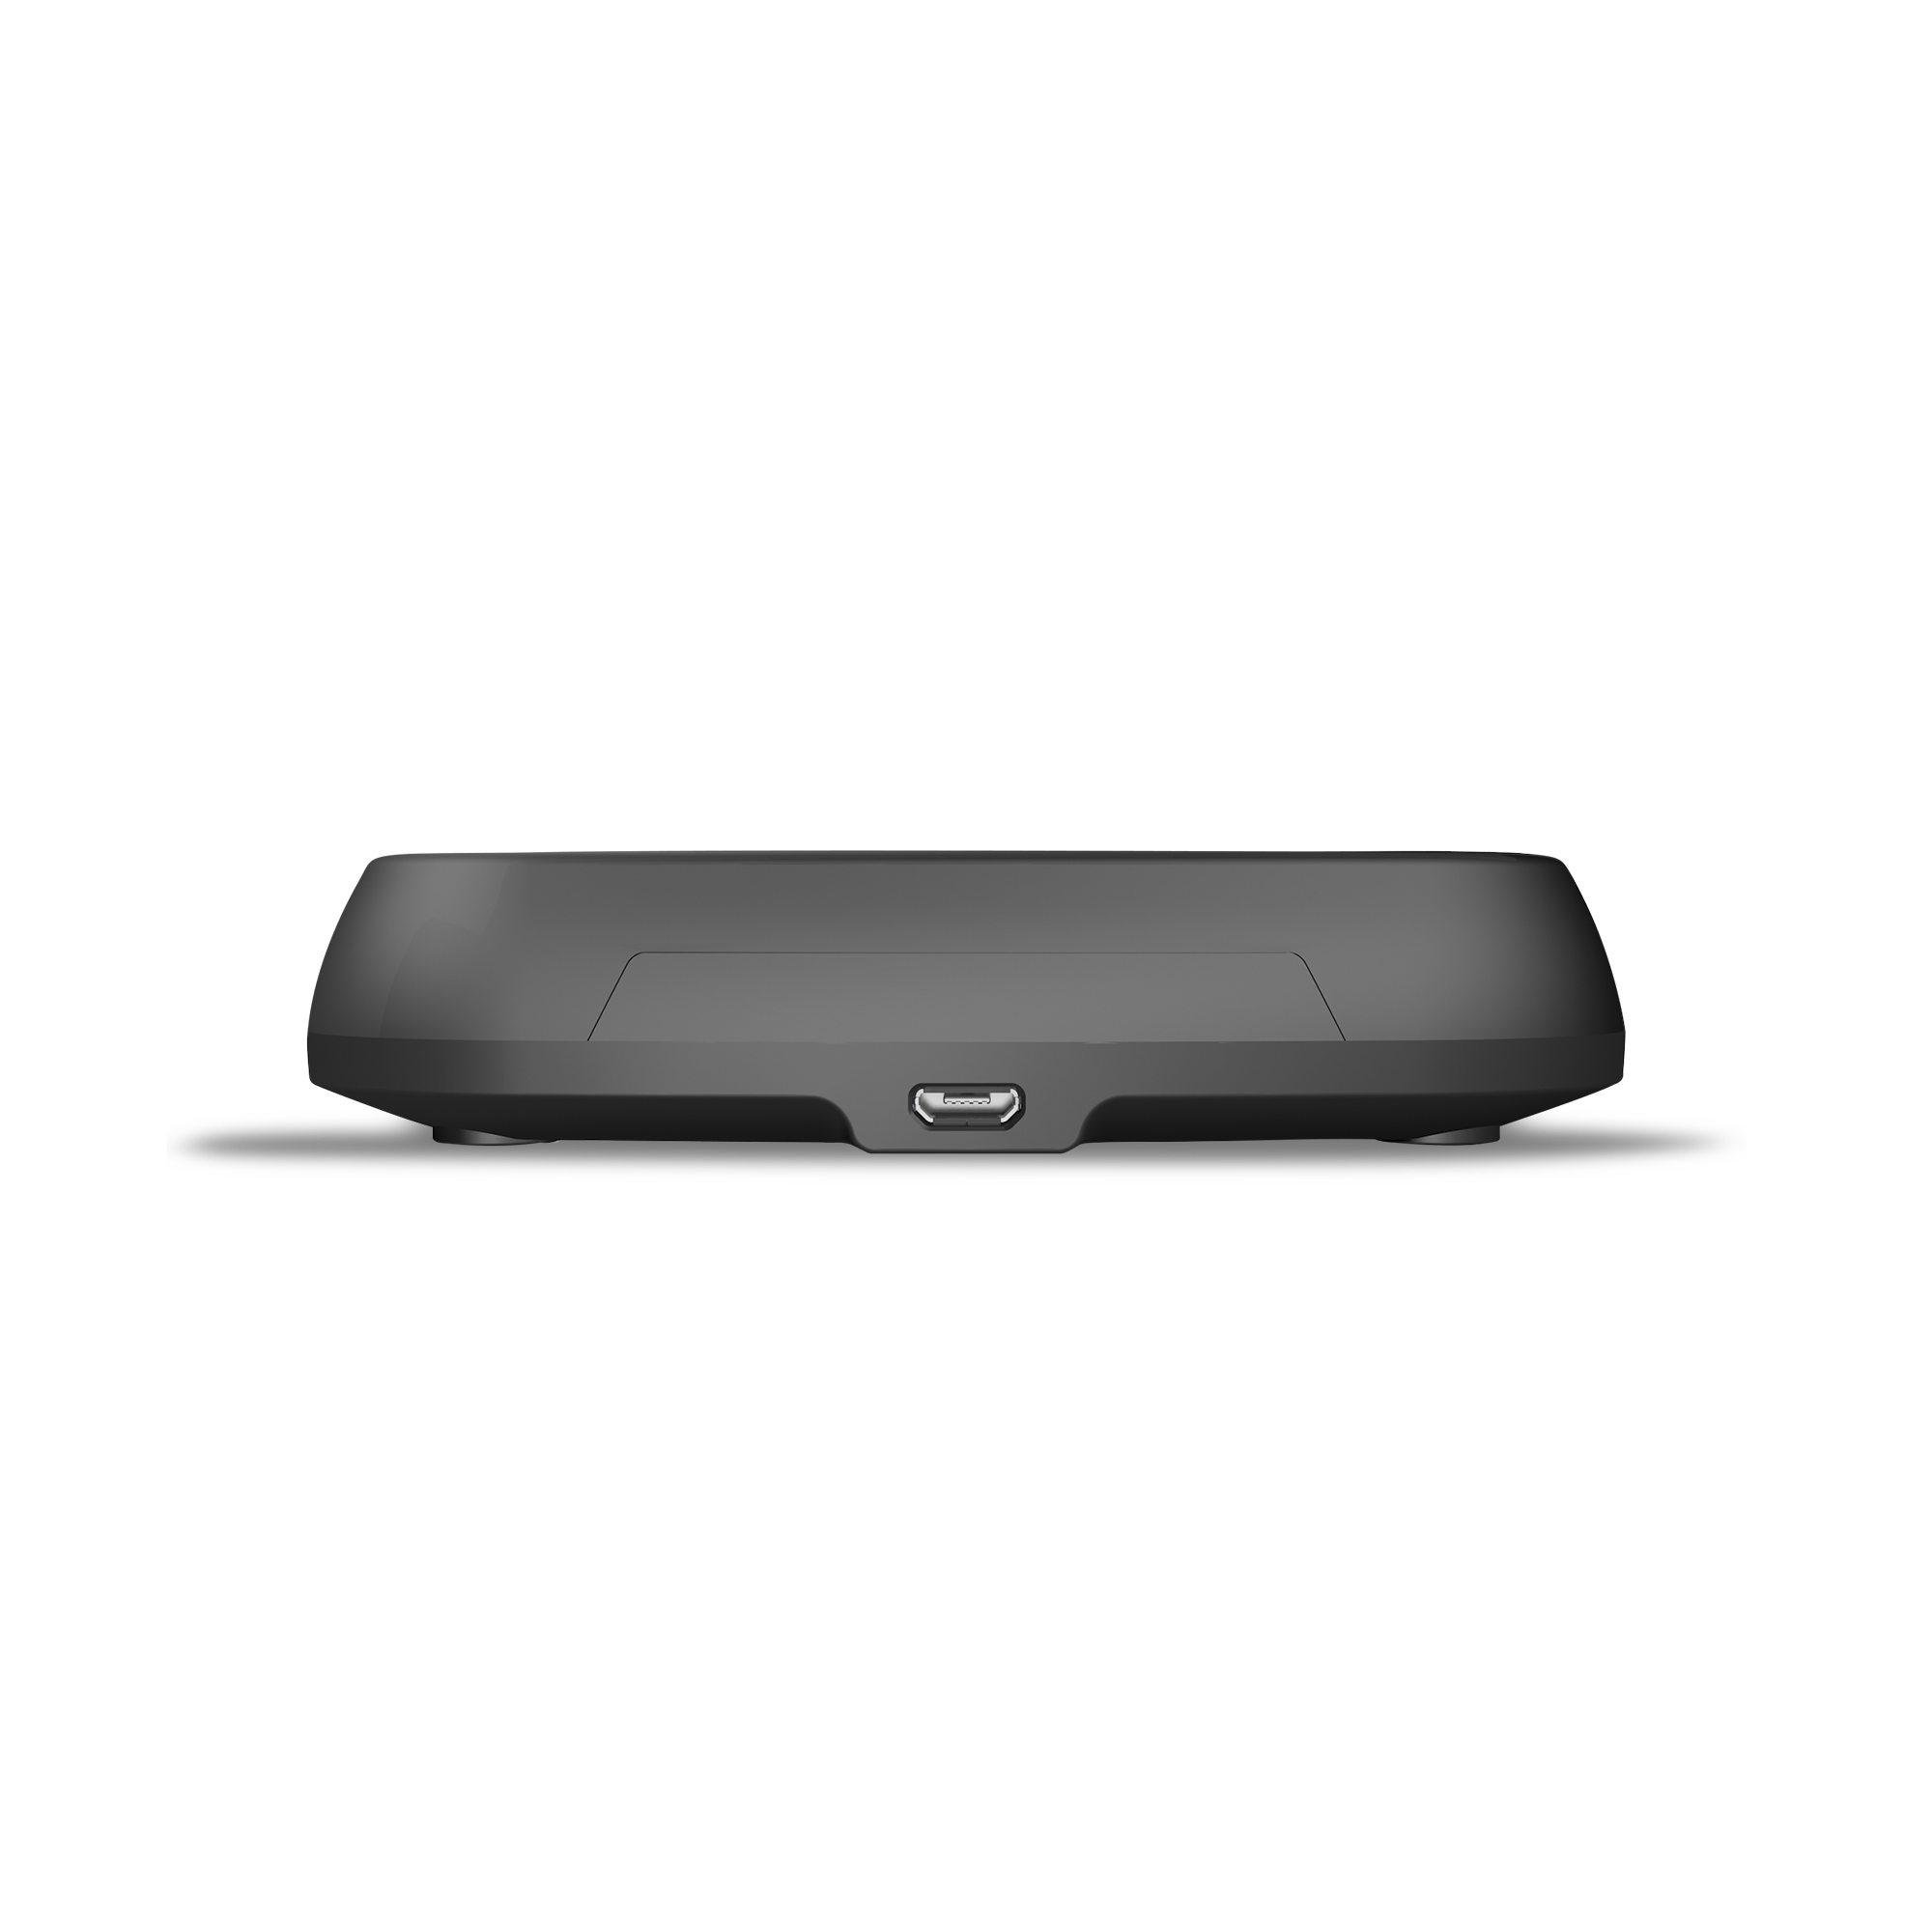 ZESC06B - Zens Fast Wireless Charger Stand Black Front View